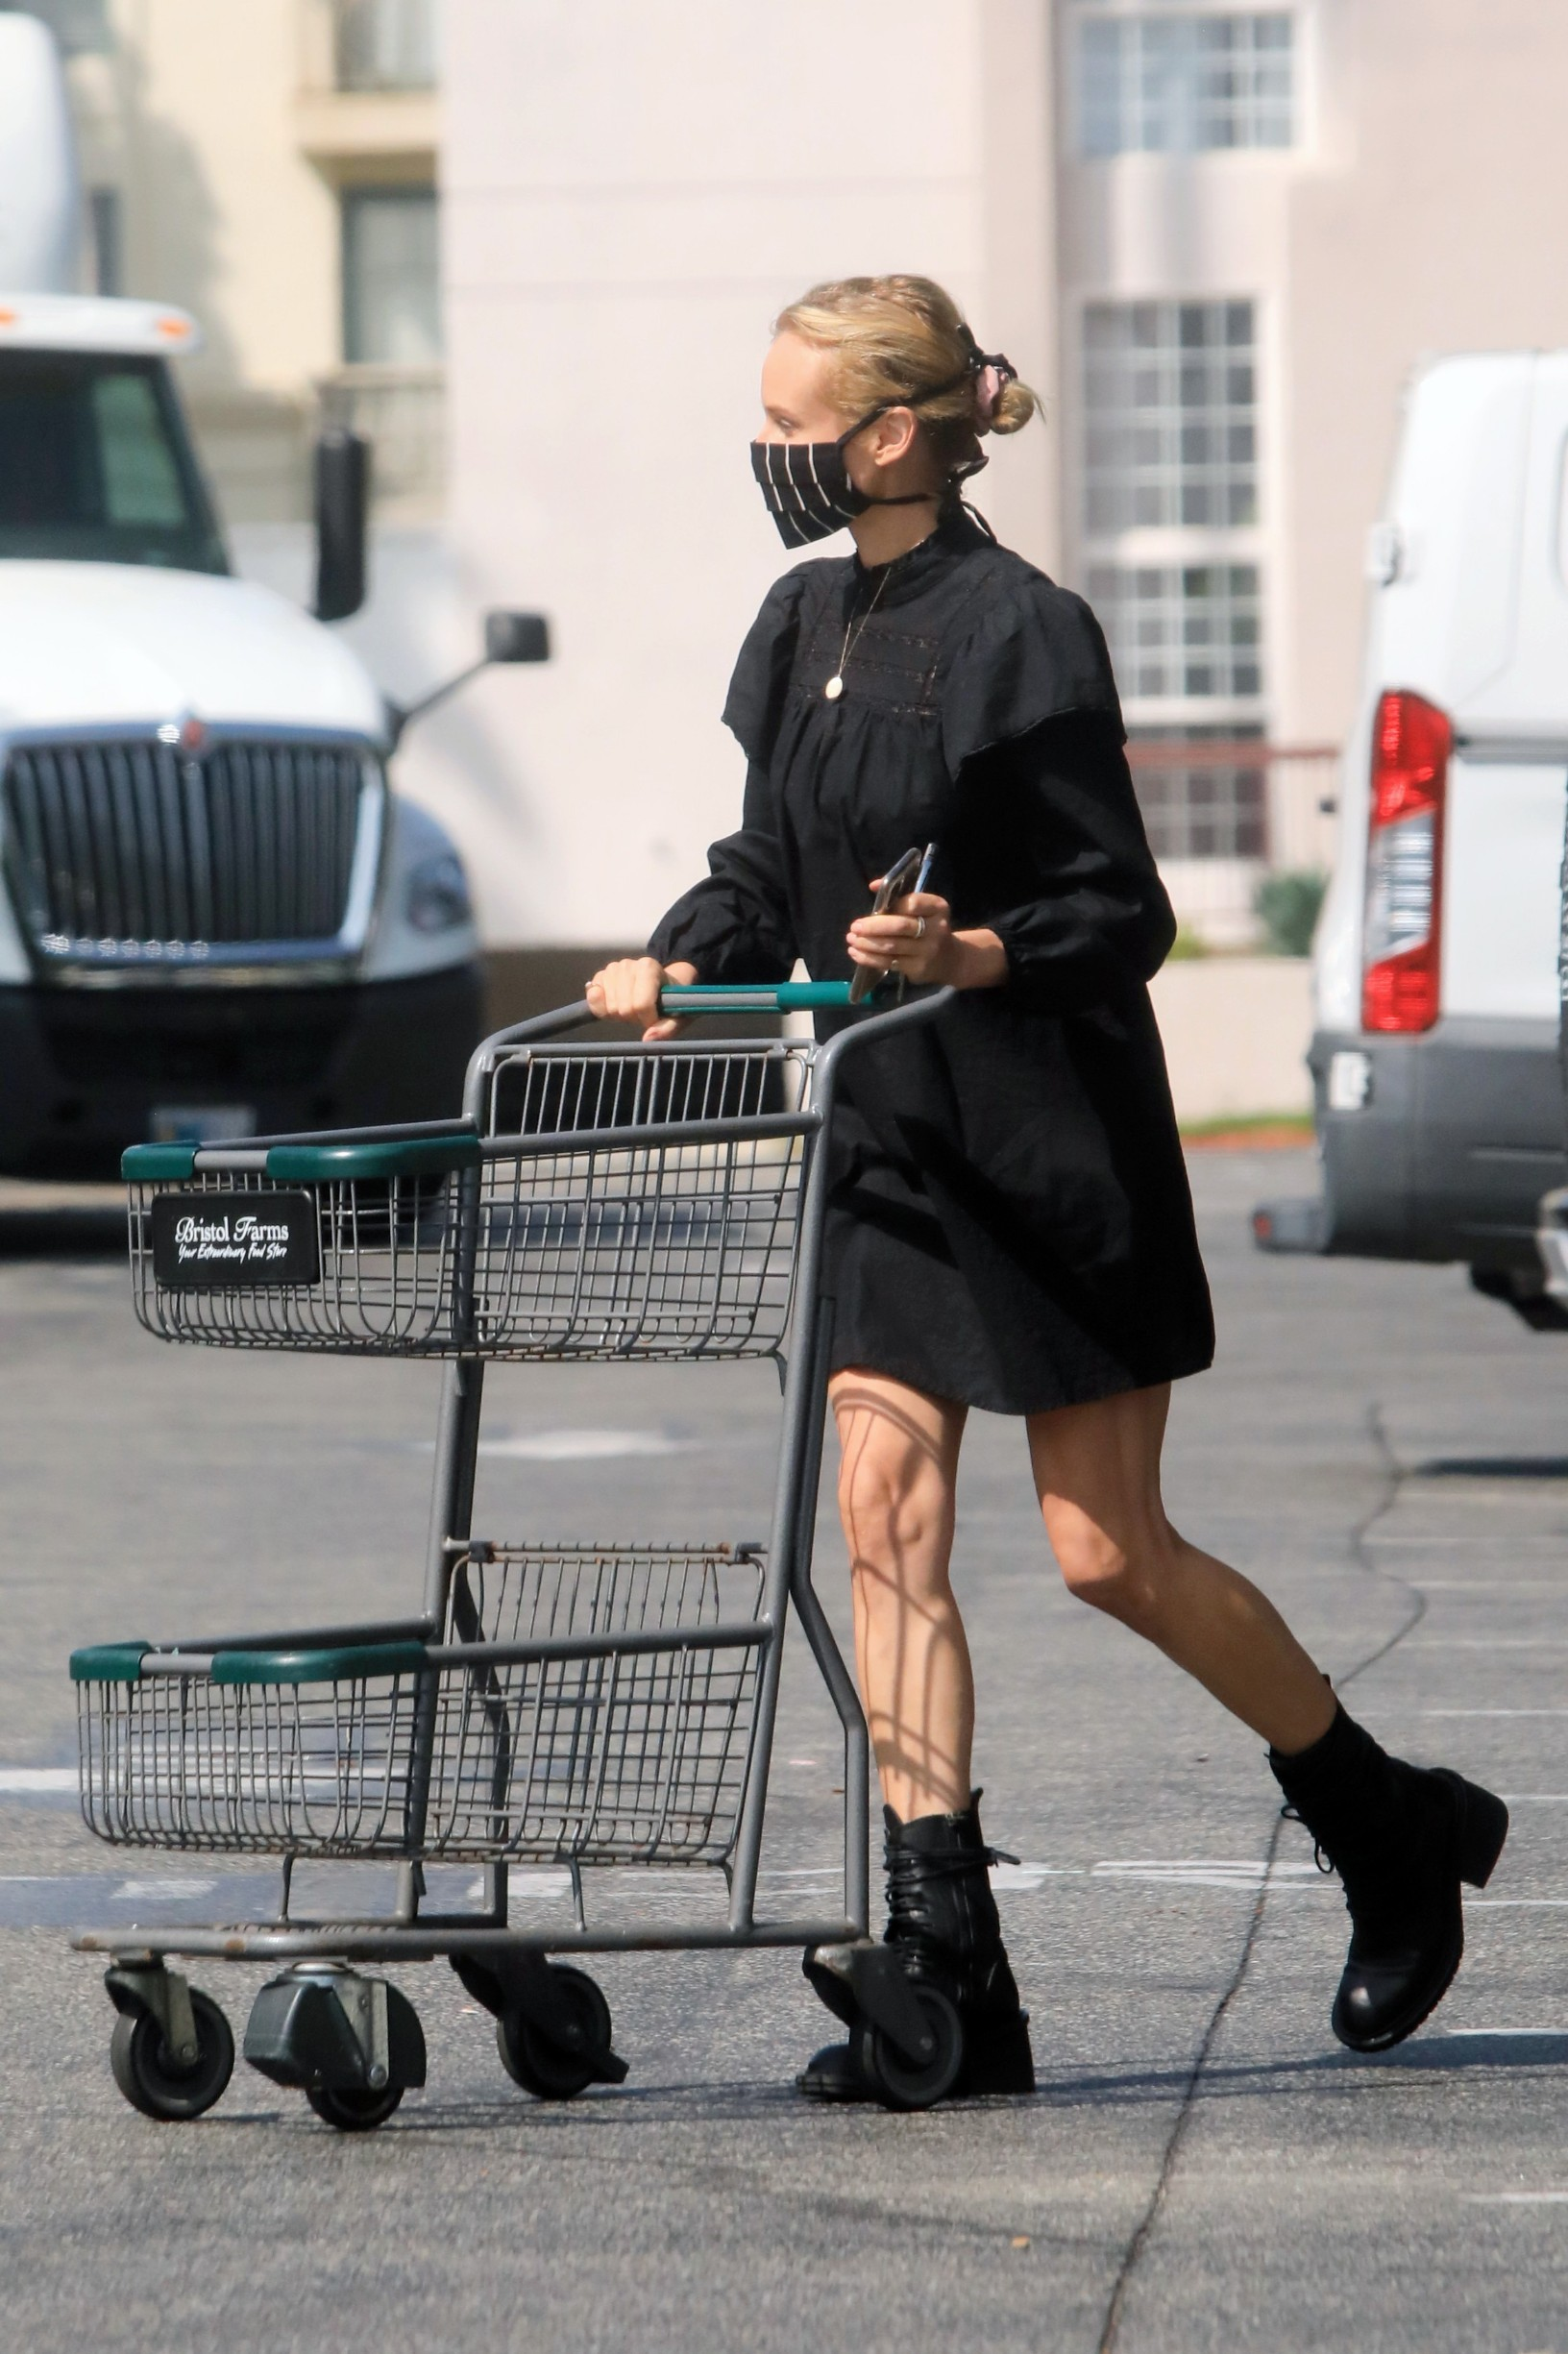 09/22/2020 EXCLUSIVE: Diane Kruger looks chic while grocery shopping in Los Angeles. The 44 year old German actress wore a black face mask, matching mini dress, and black combat boots.,Image: 559266111, License: Rights-managed, Restrictions: Exclusive NO usage without agreed price and terms. Please contact sales@theimagedirect.com, Model Release: no, Credit line: TheImageDirect.com / The Image Direct / Profimedia